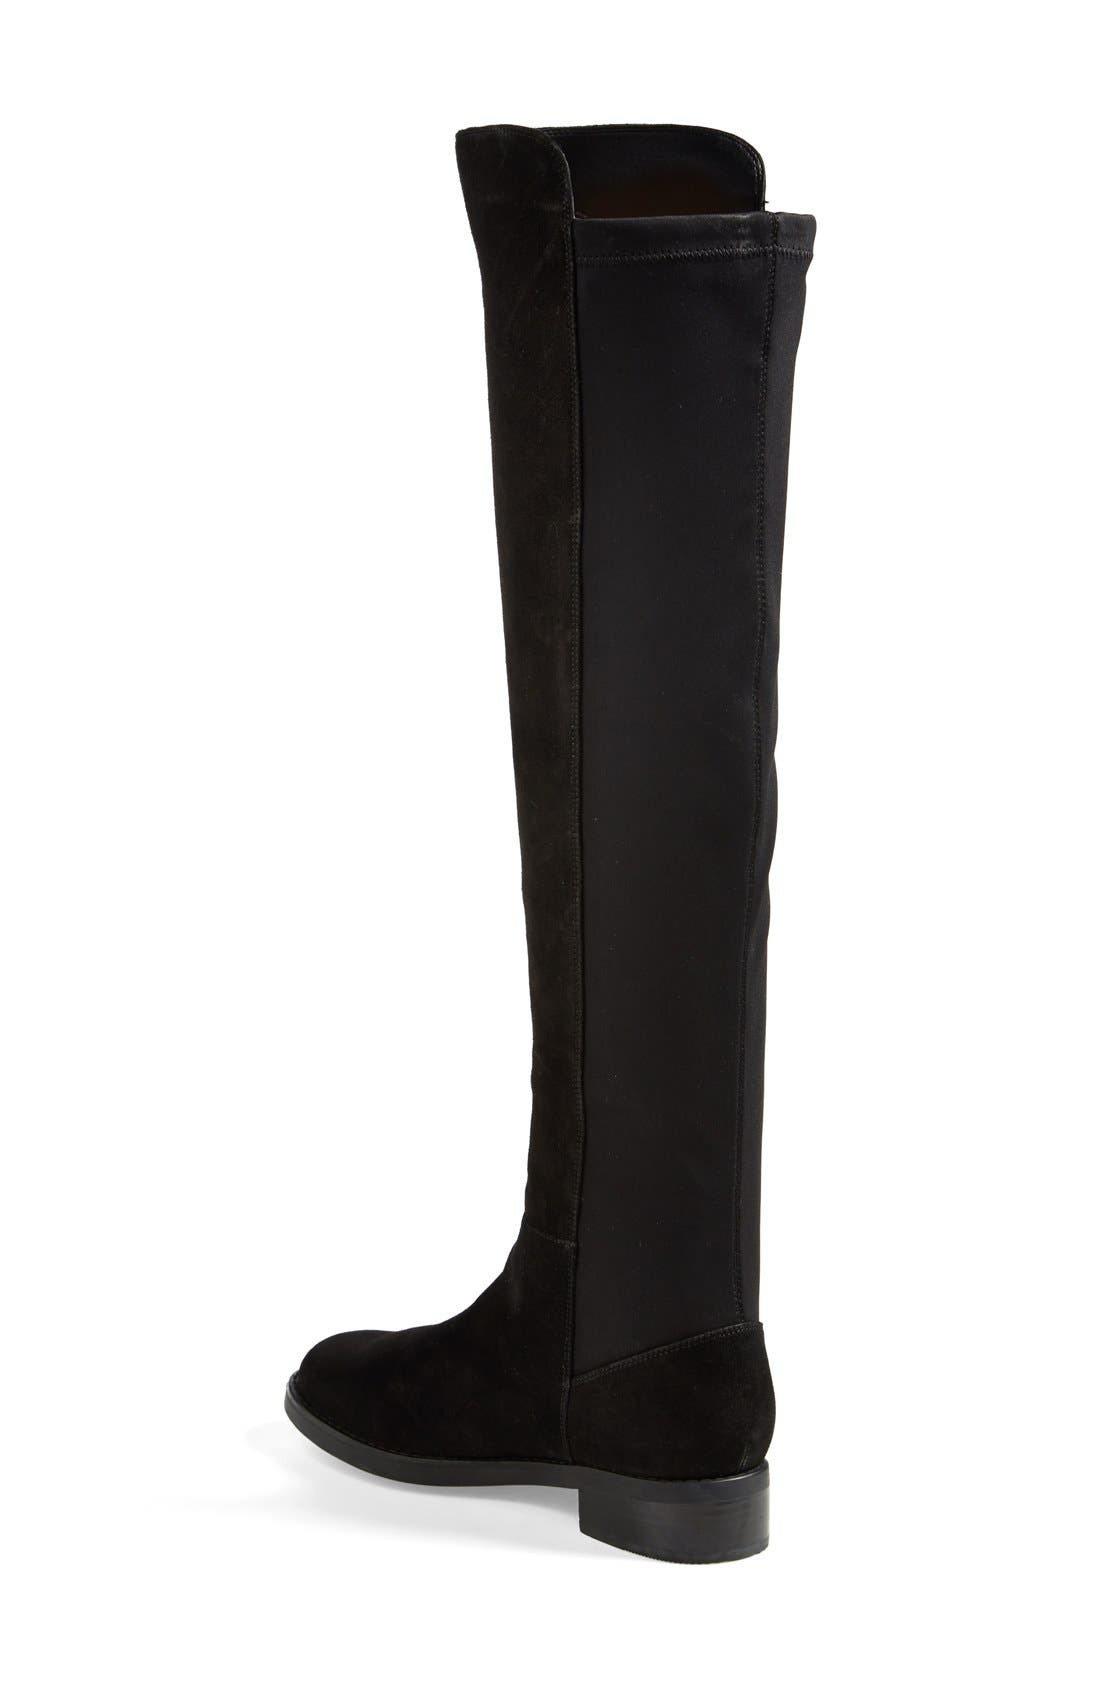 BLONDO,                             'Eden' Over the Knee Waterproof Boot,                             Alternate thumbnail 3, color,                             001